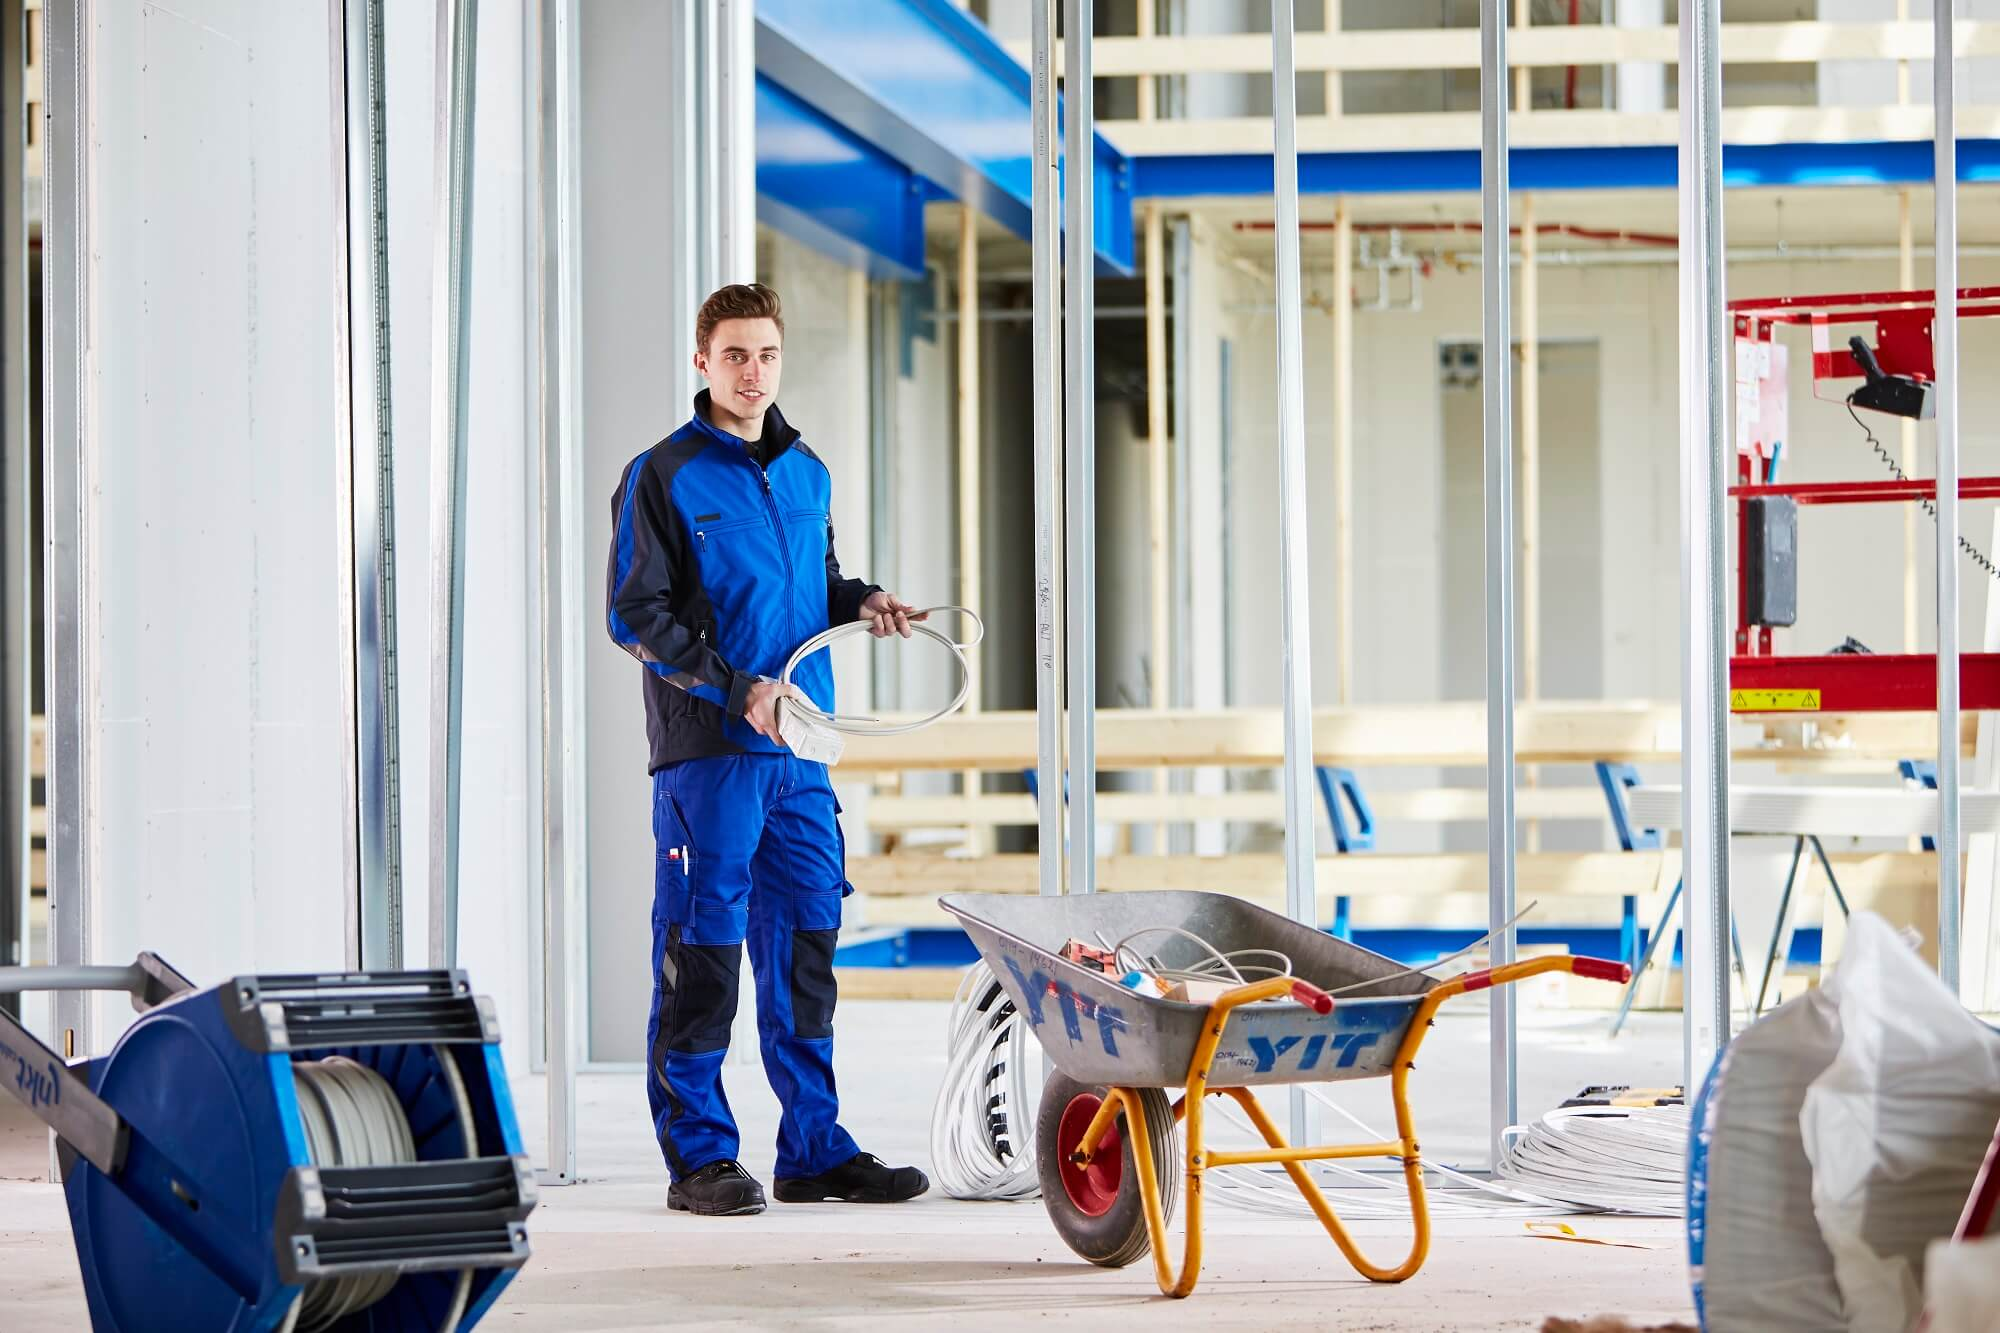 Work Jacket & Work Trousers - Royal blue - Craftmen and light building